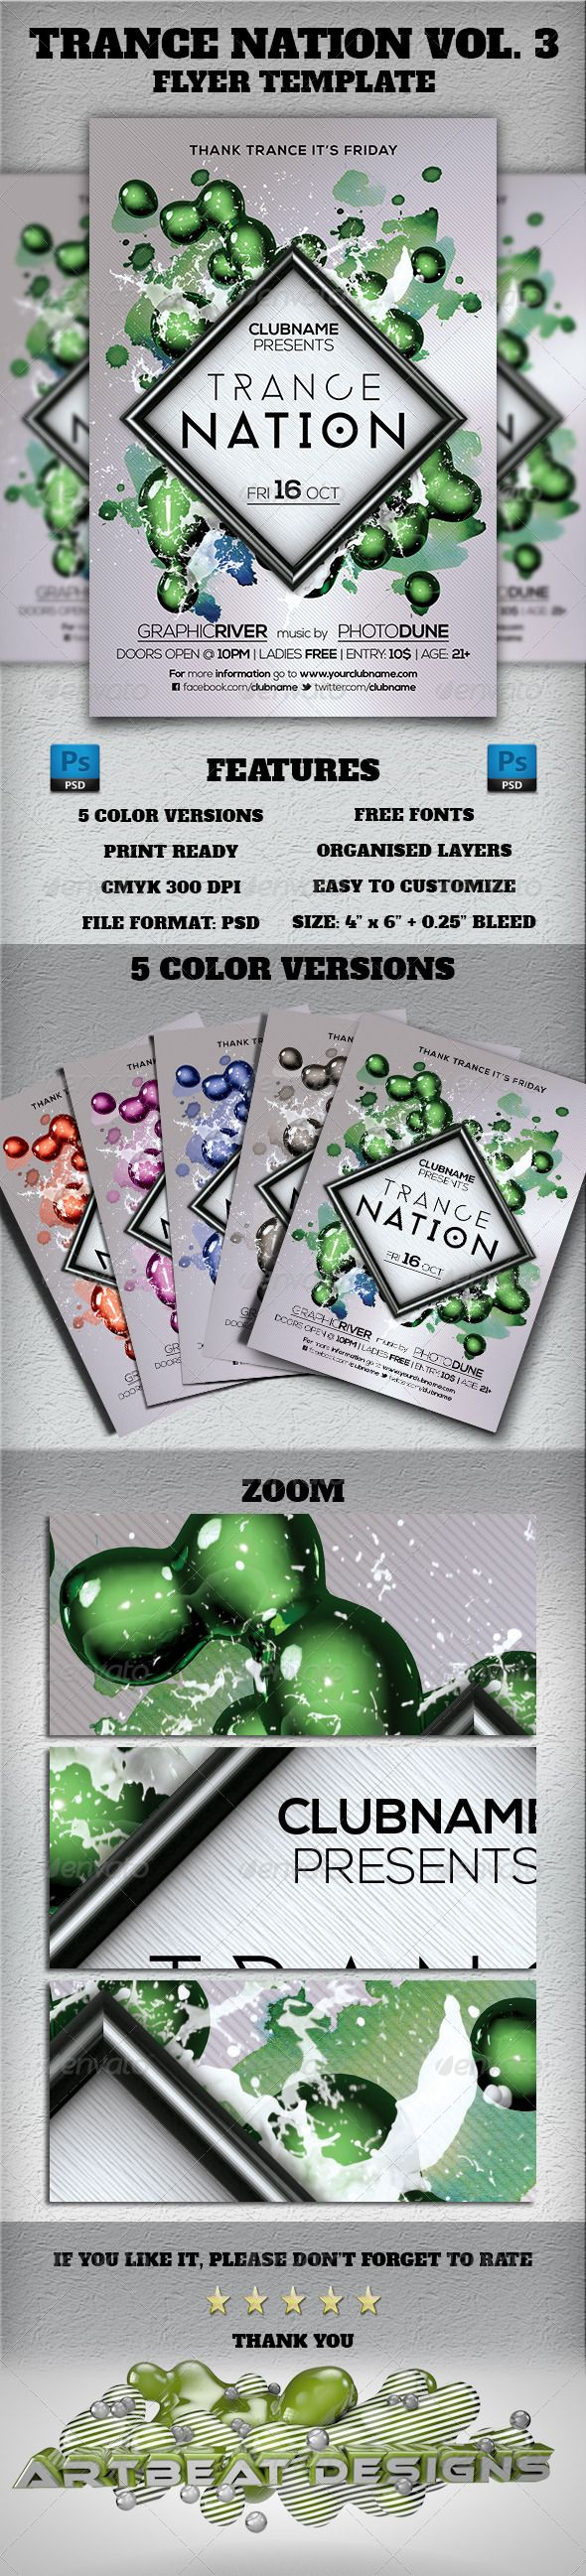 "Trance Nation Vol. 3 Flyer Template  #GraphicRiver        Trance Nation Vol. 3 Flyer Template  	 Everything in the PSD file is well organized and grouped. You can easily change the text and fonts.  Feauters     Color profile: CMYK 300 DPI   Print Ready!  Print dimension 4"" x 6"" with 0.25"" bleed    Color versions: (5 colors)  	 Choose one of the pre-made background colors. Available in: Blue, Green, Purple, Black and Red  Fonts:    Phantom: Download Nexa Light & Nexa Bold: Download  Social…"